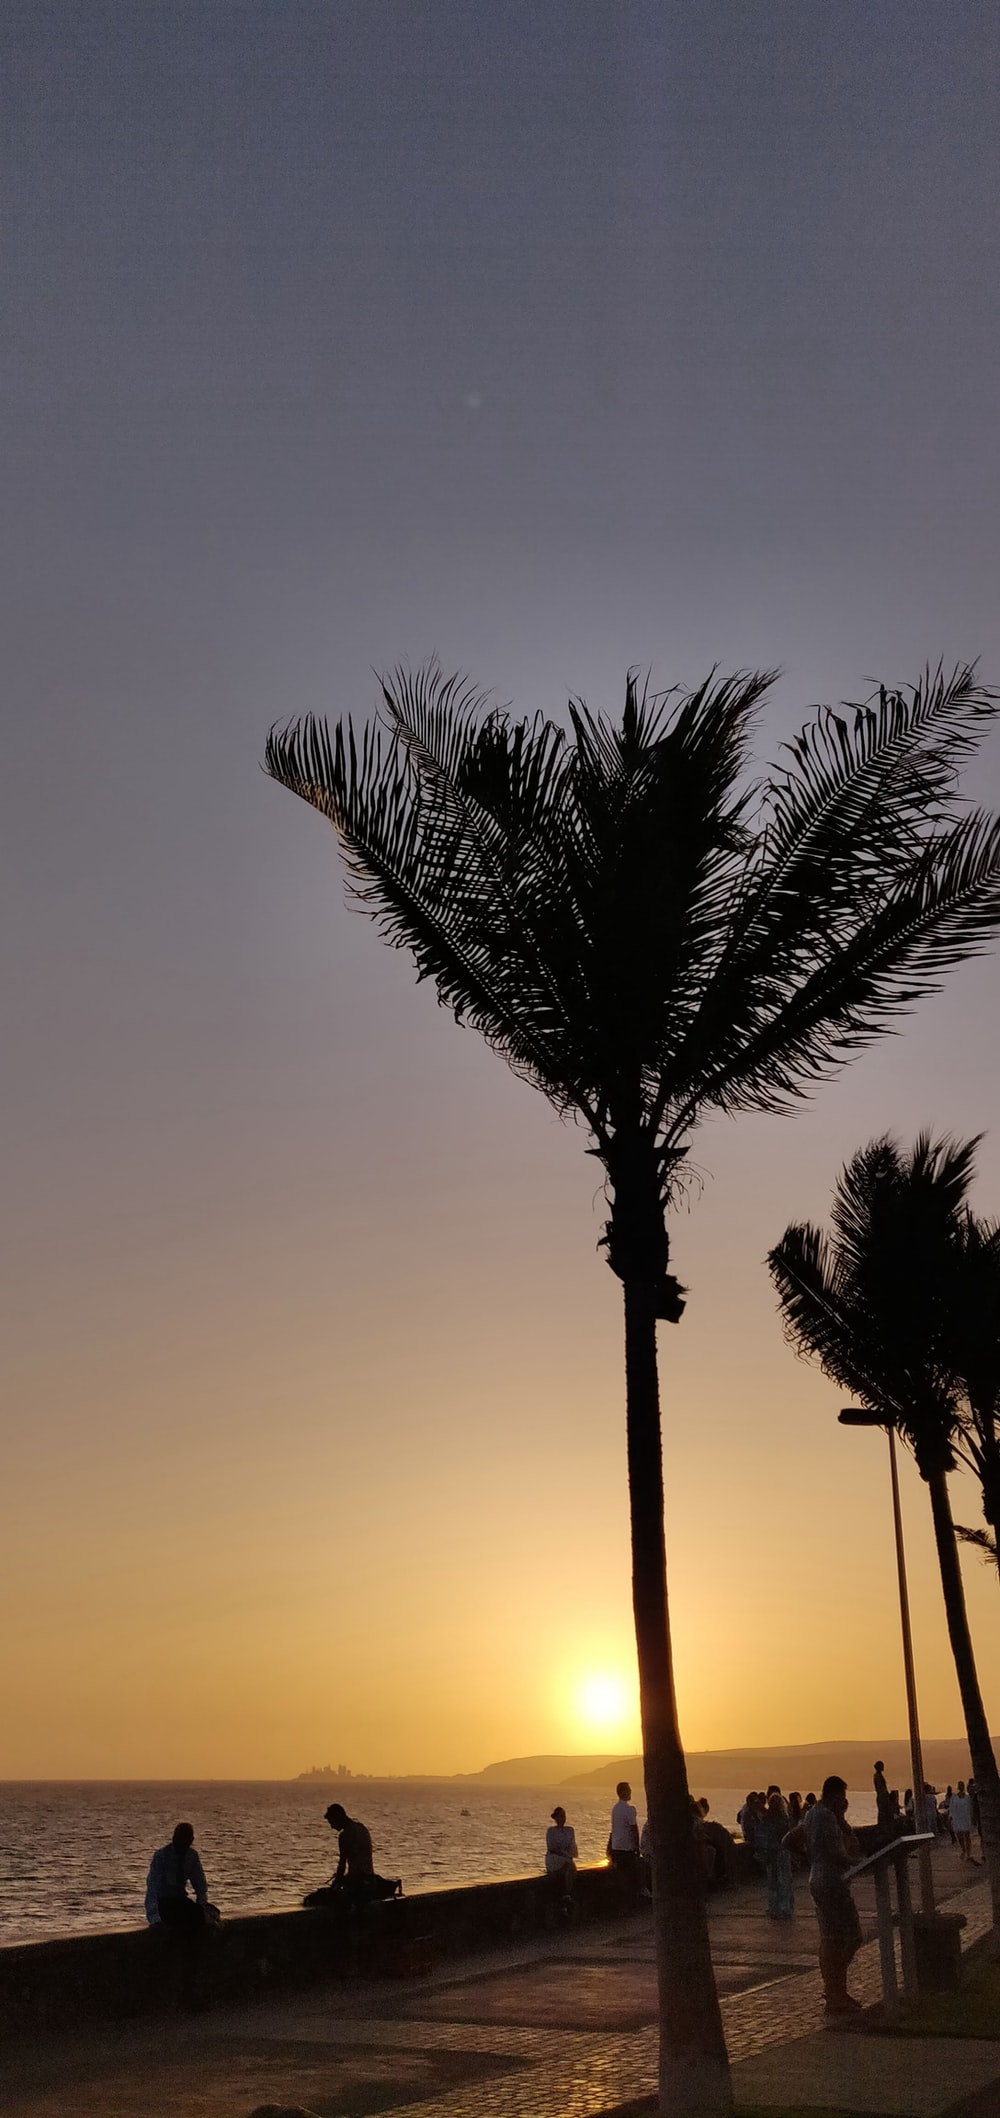 silhouette photo of lined palm trees near sitting people at golden hour